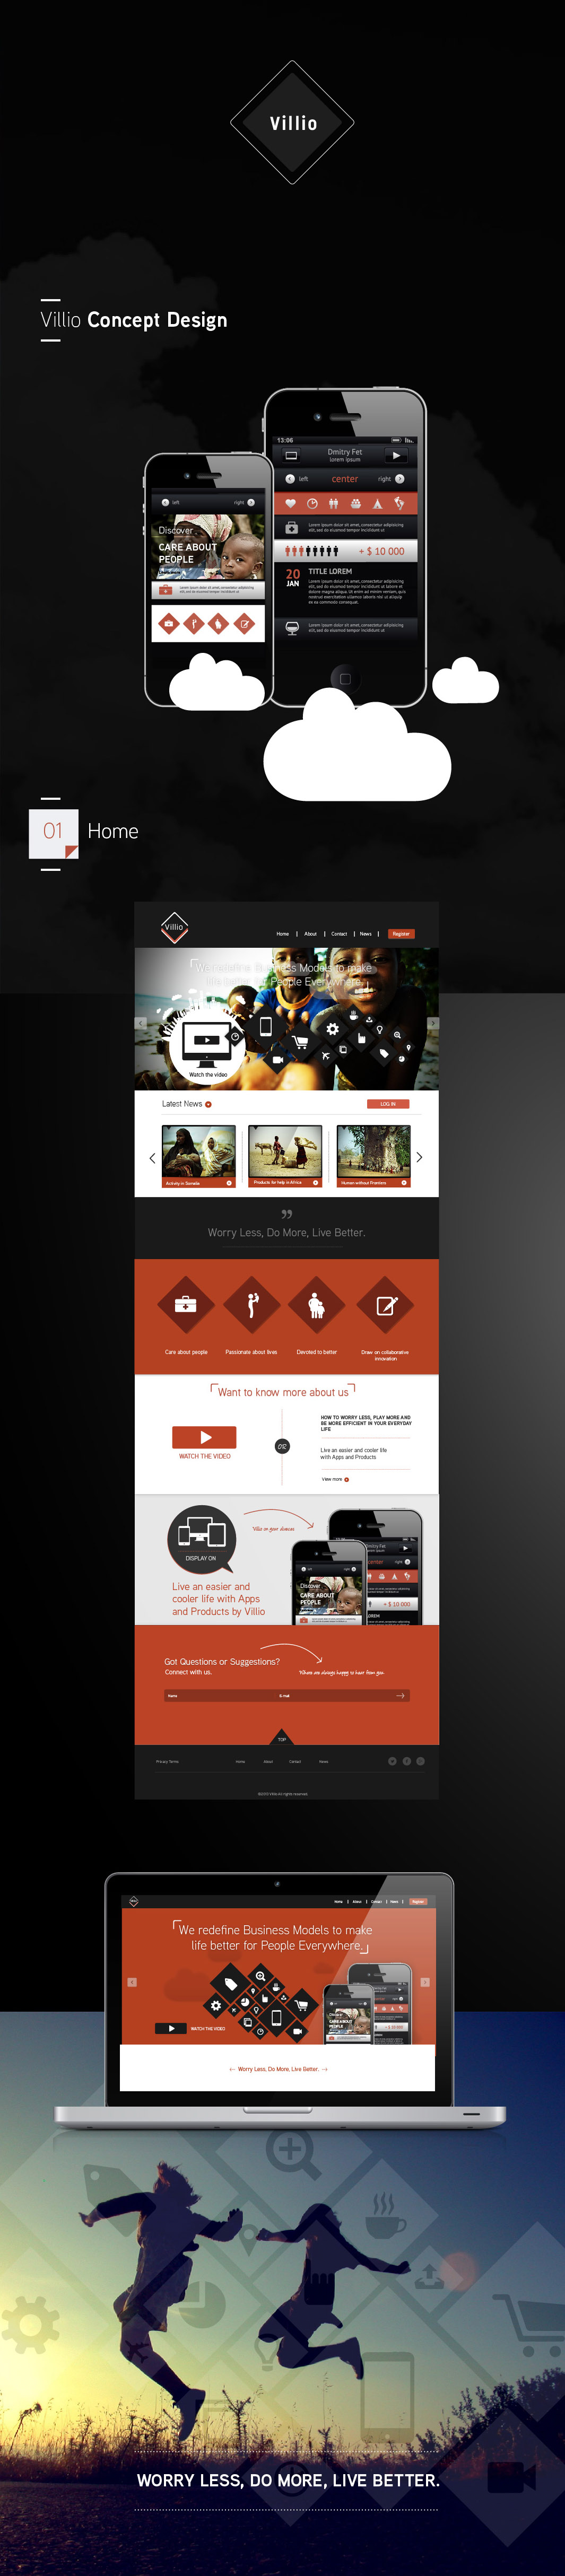 Villio / Website Interface Concept